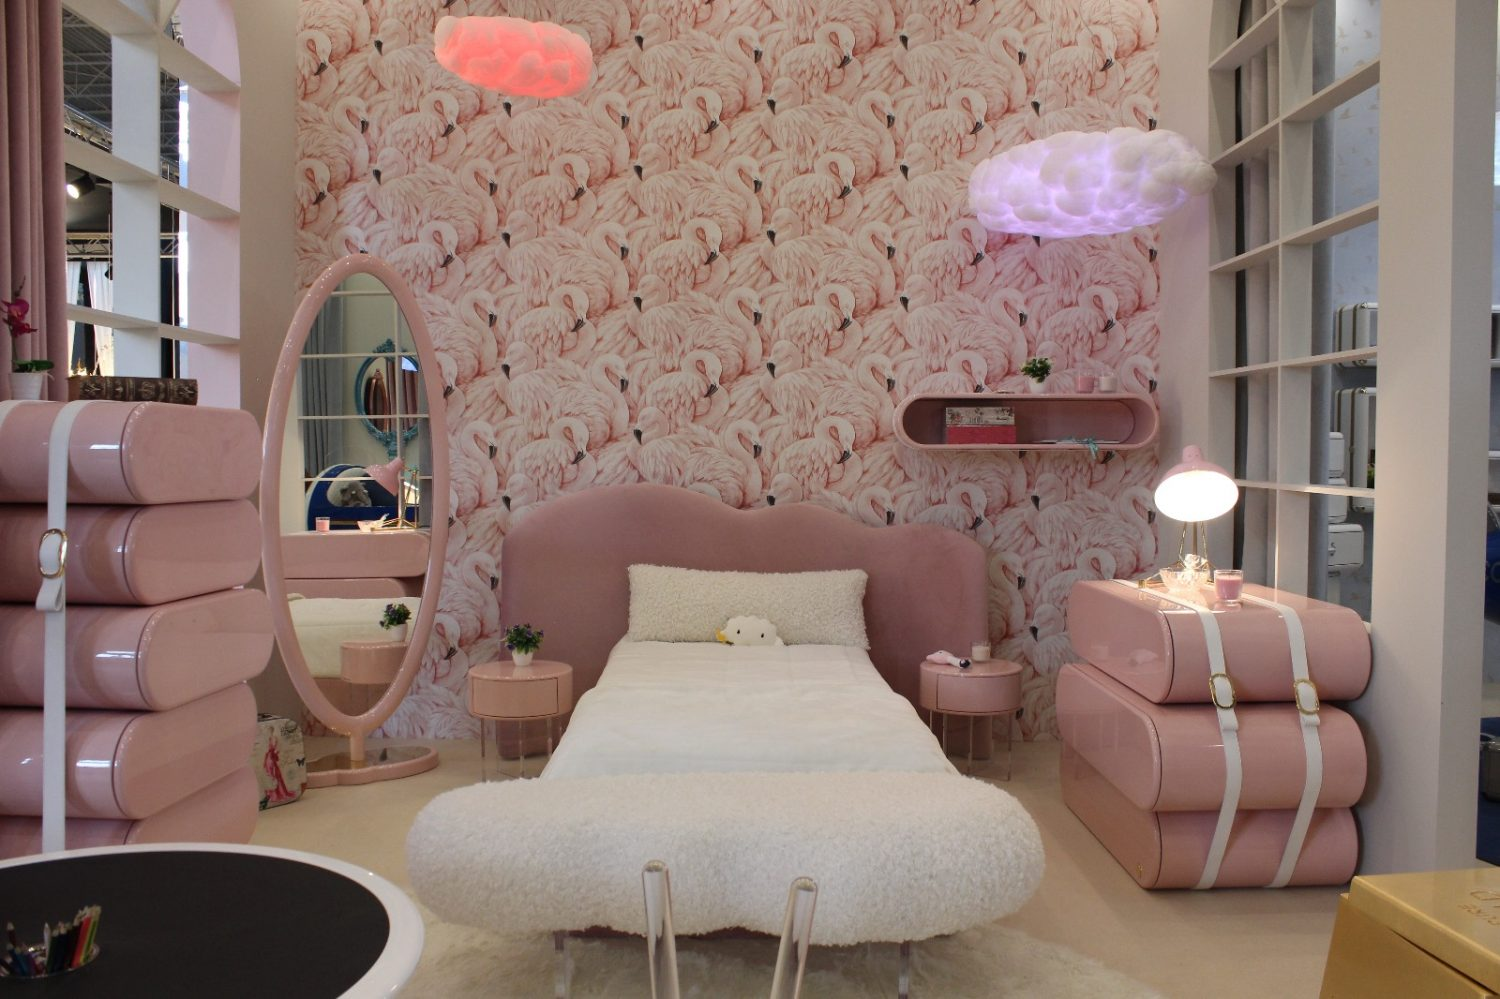 maison et objet 2020 Maison Et Objet 2020: Meet The Most Magical Kids Furniture Pieces Circus Girl Room   Covet Group